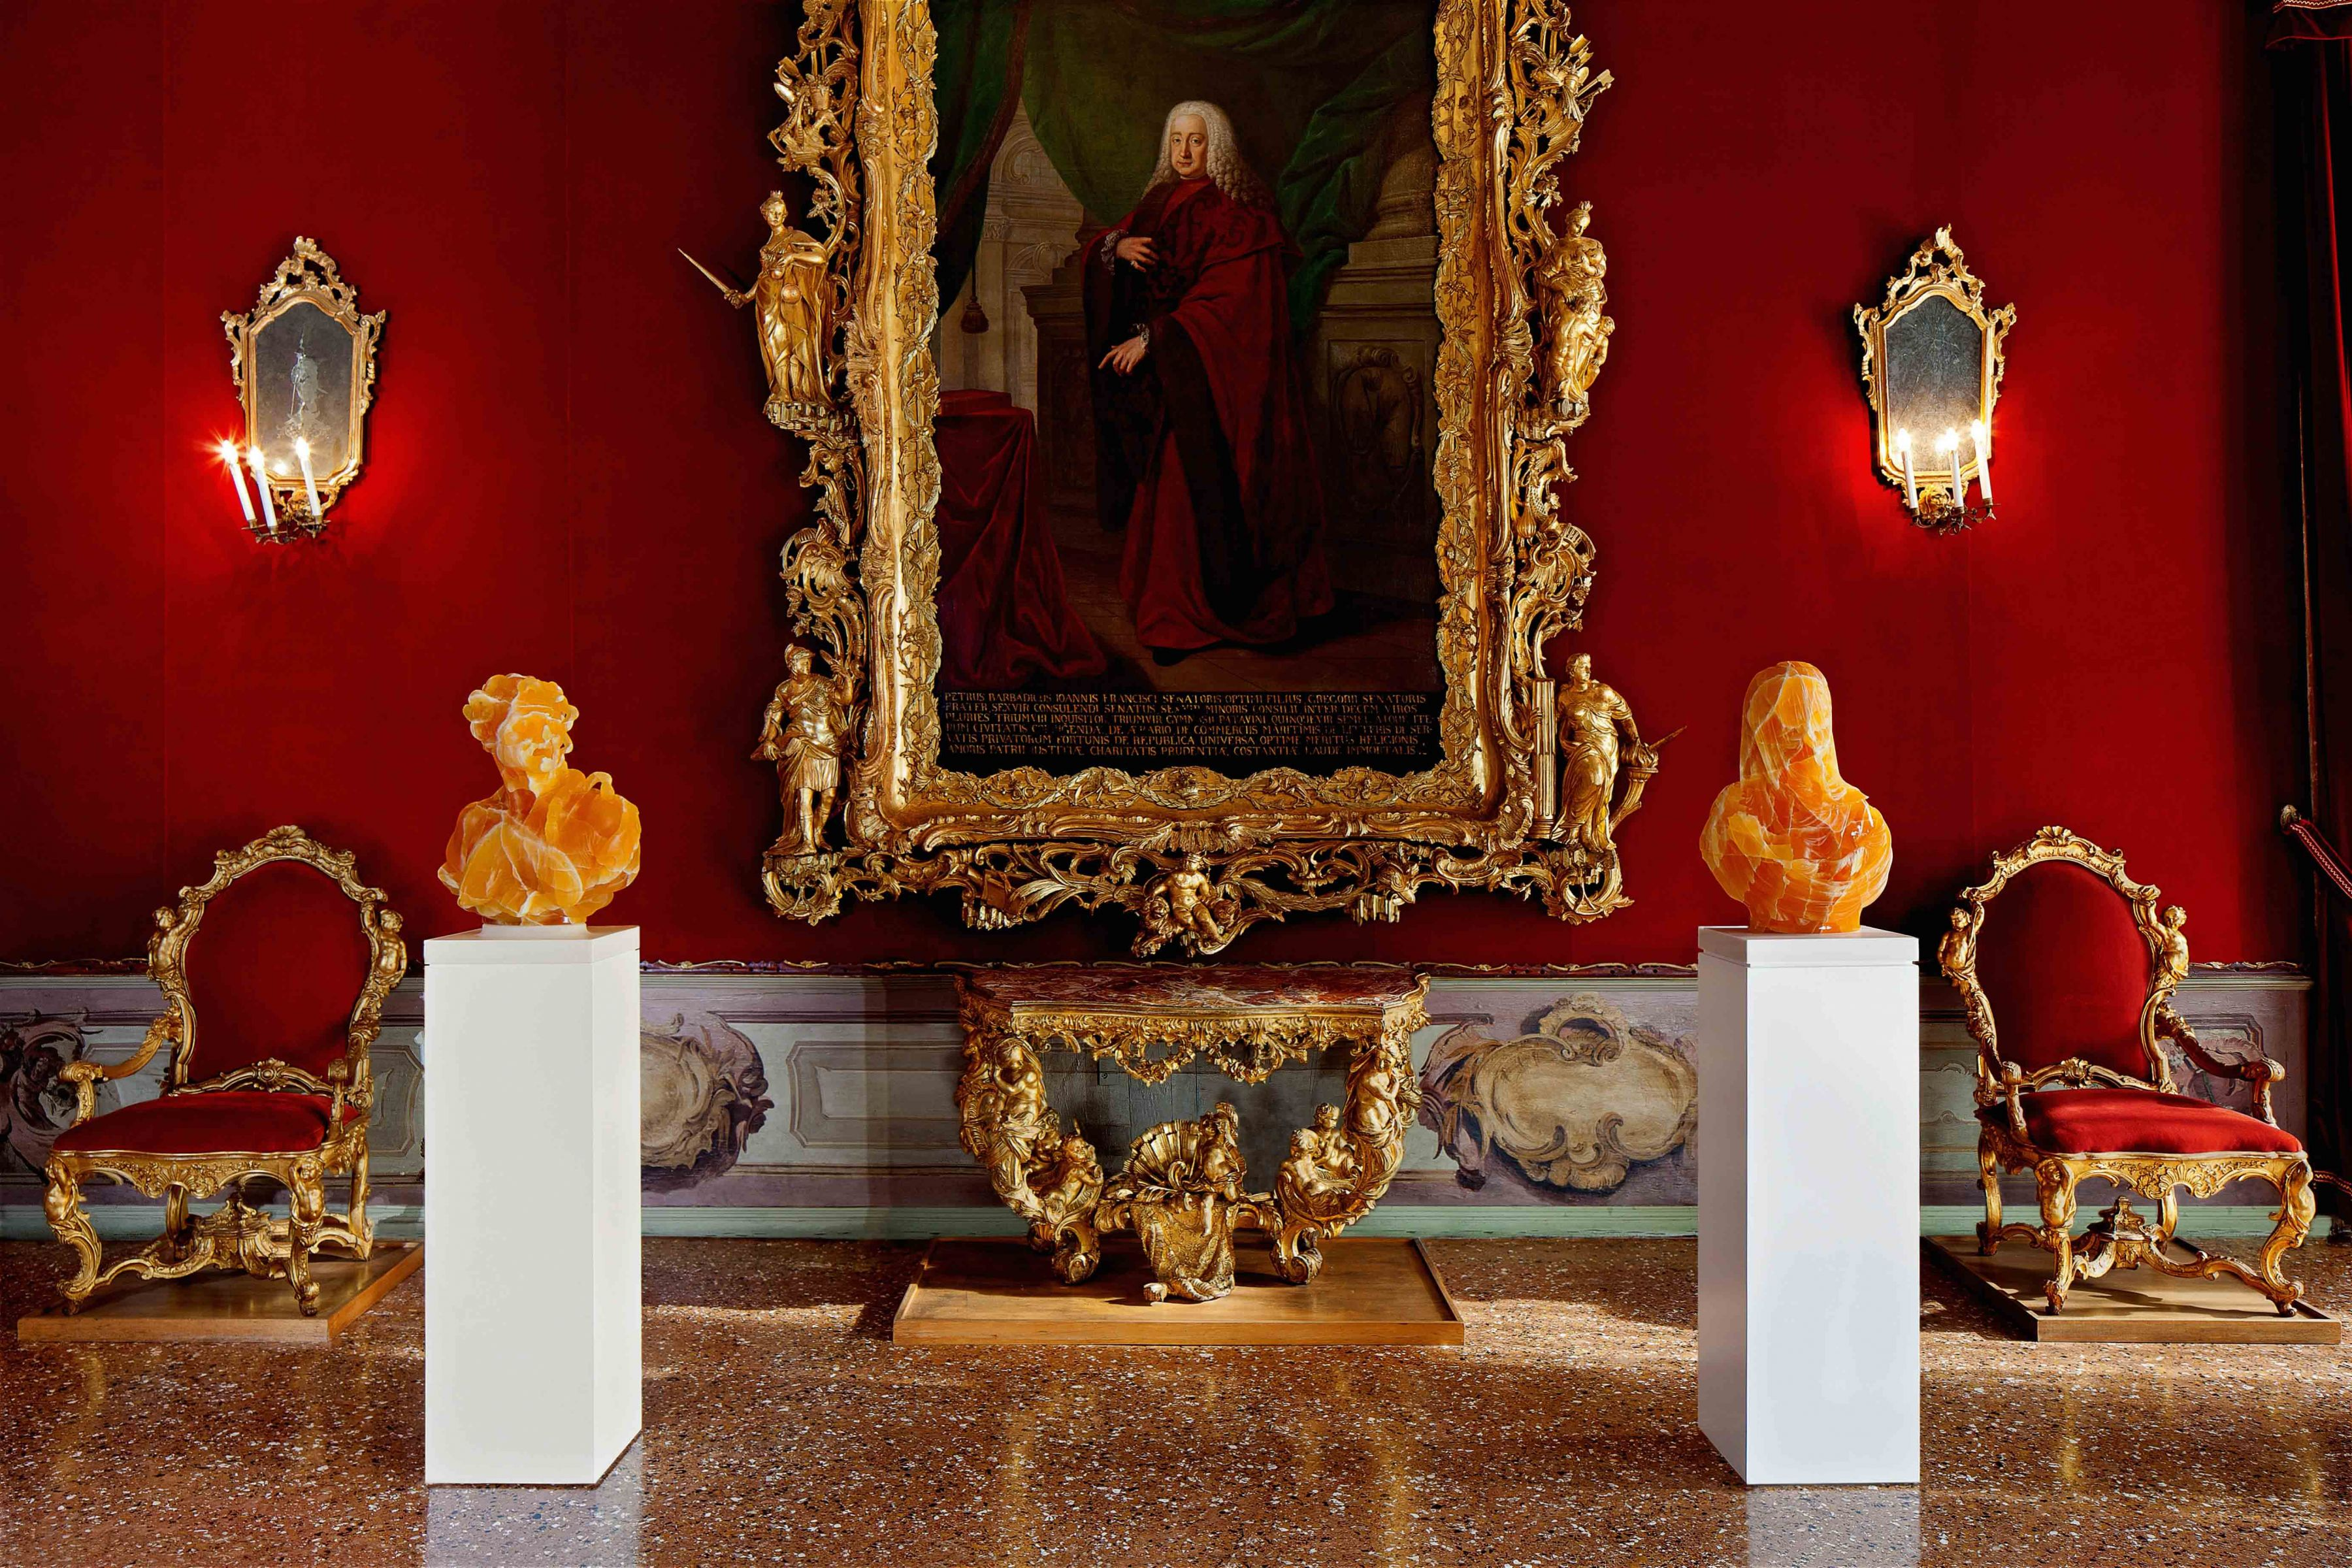 Barry X Ball Envy and Purity in Utah Golden Honeycomb Calcite The Throne Room — Ca' Rezzonico, Venice archival inkjet print